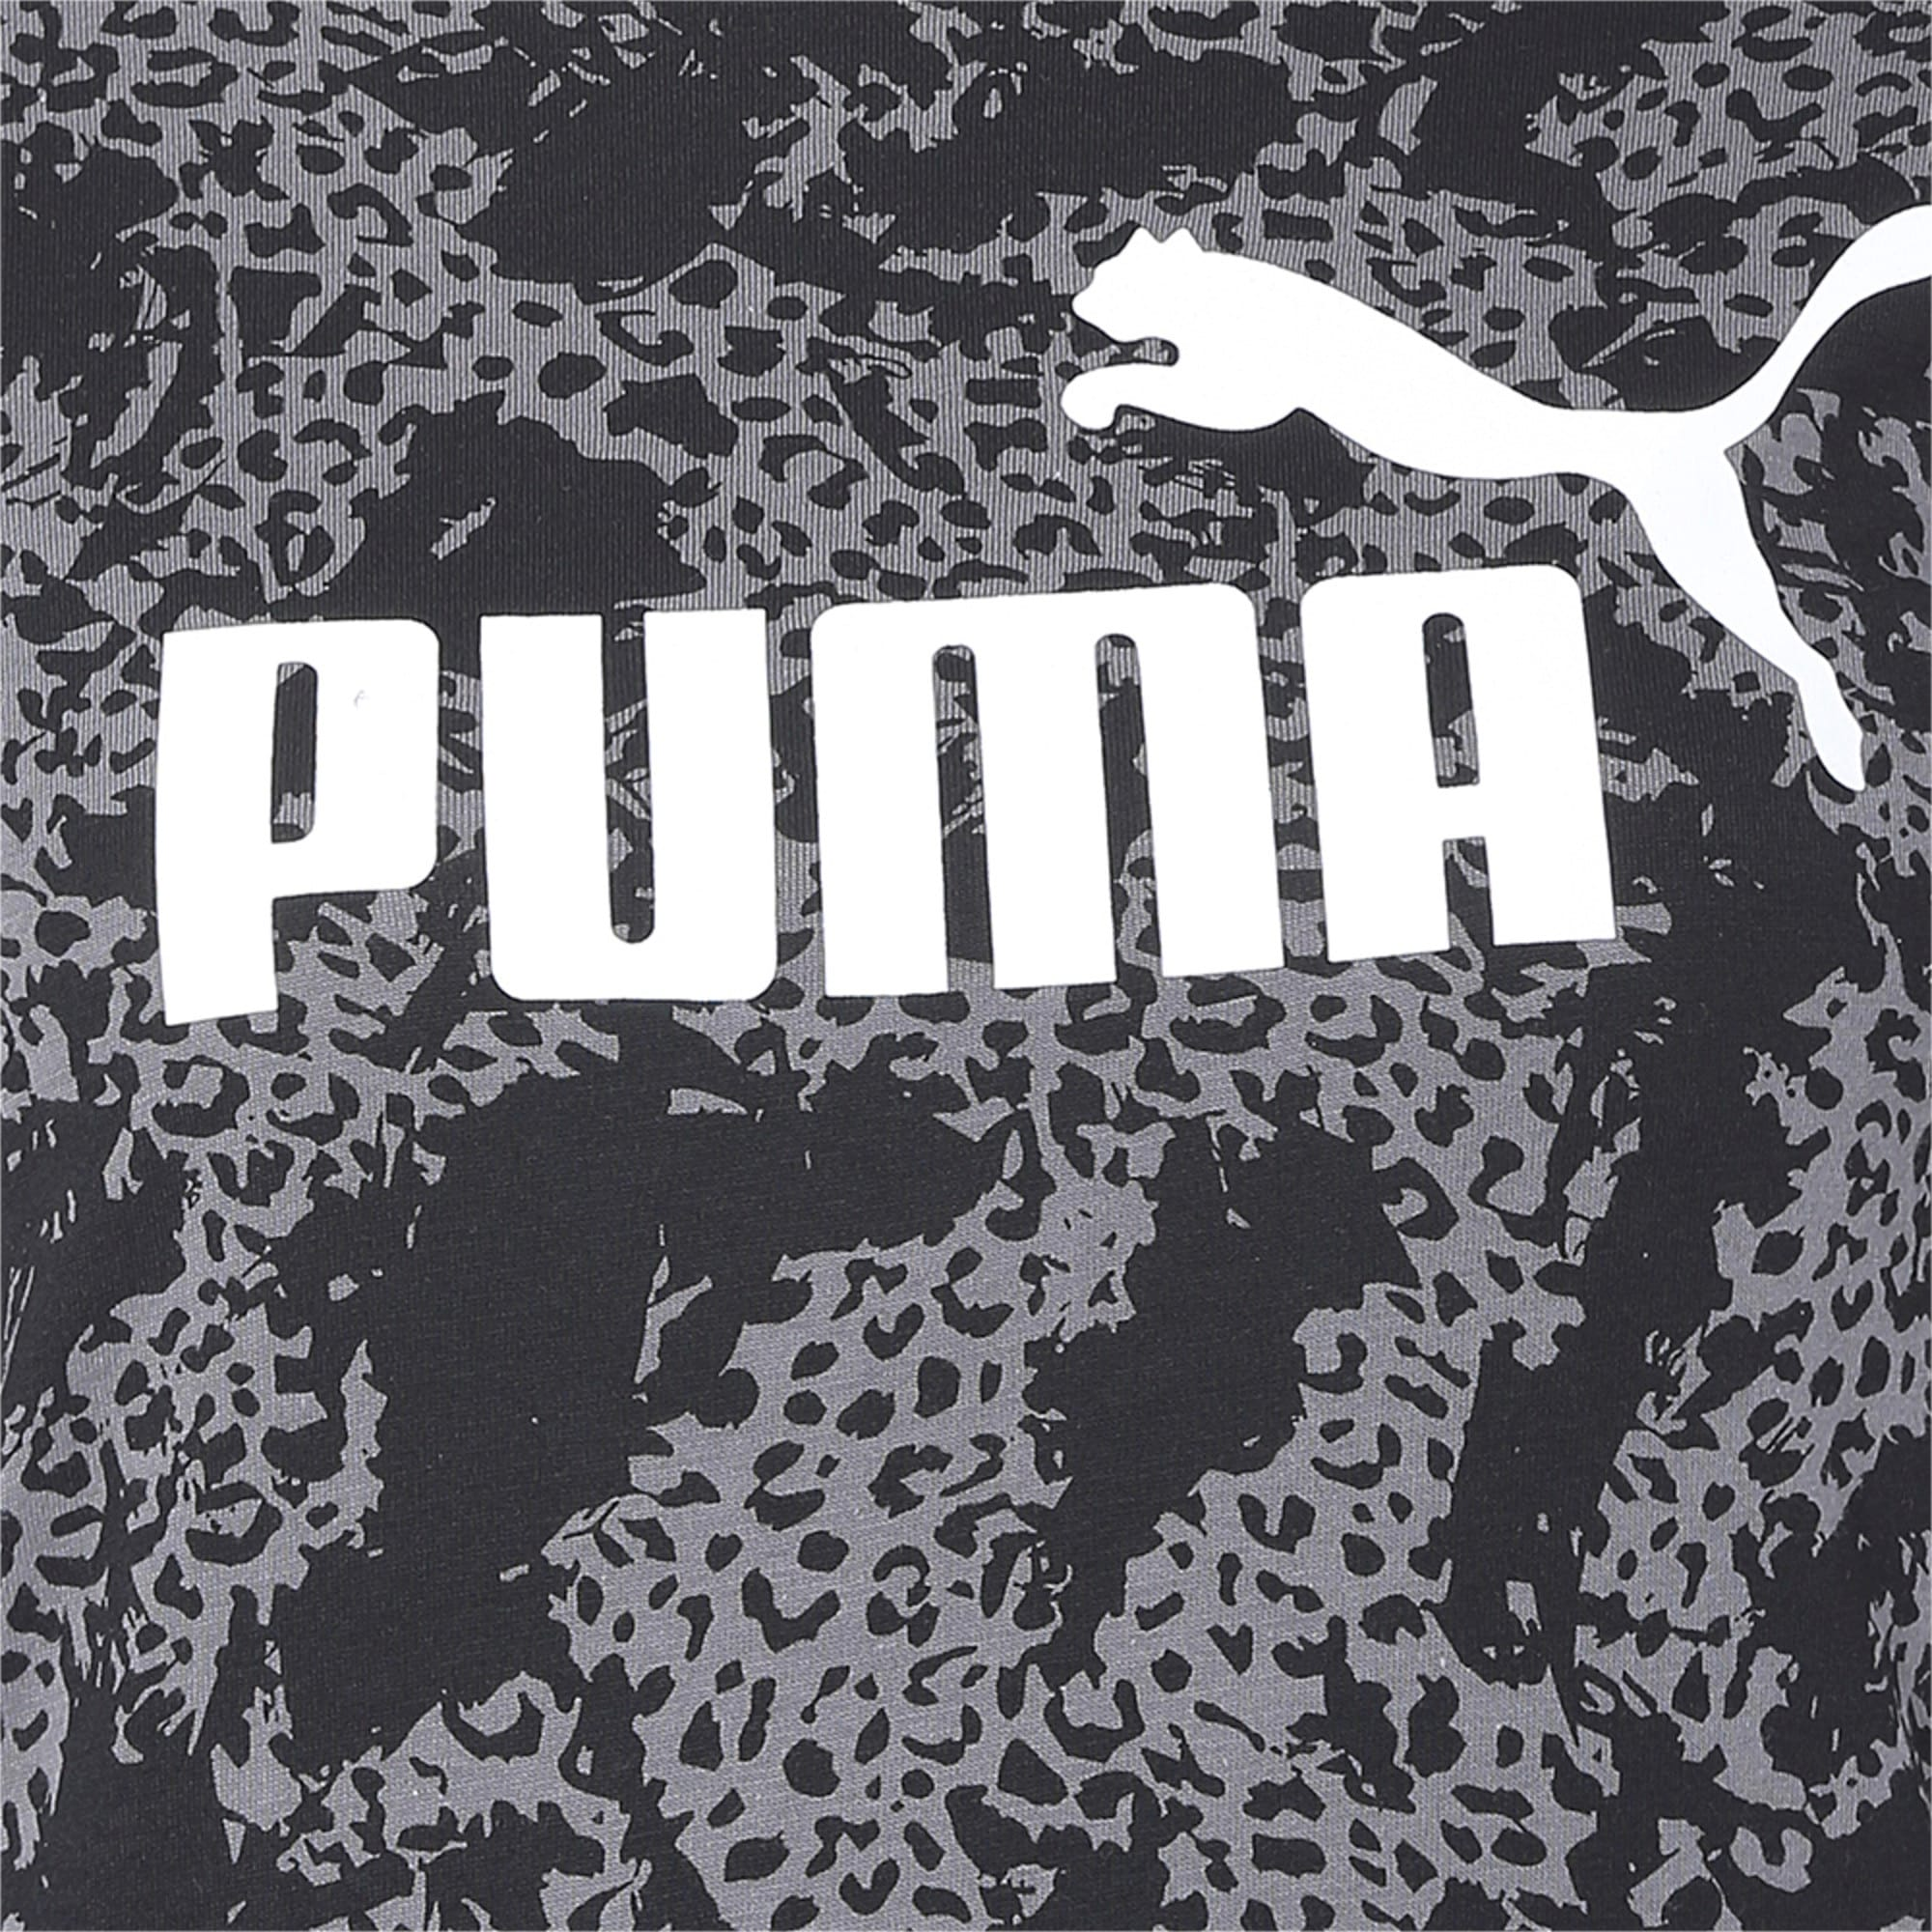 Thumbnail 6 of Elevated Essentials All-Over Print Women's Tee, Puma Black, medium-IND